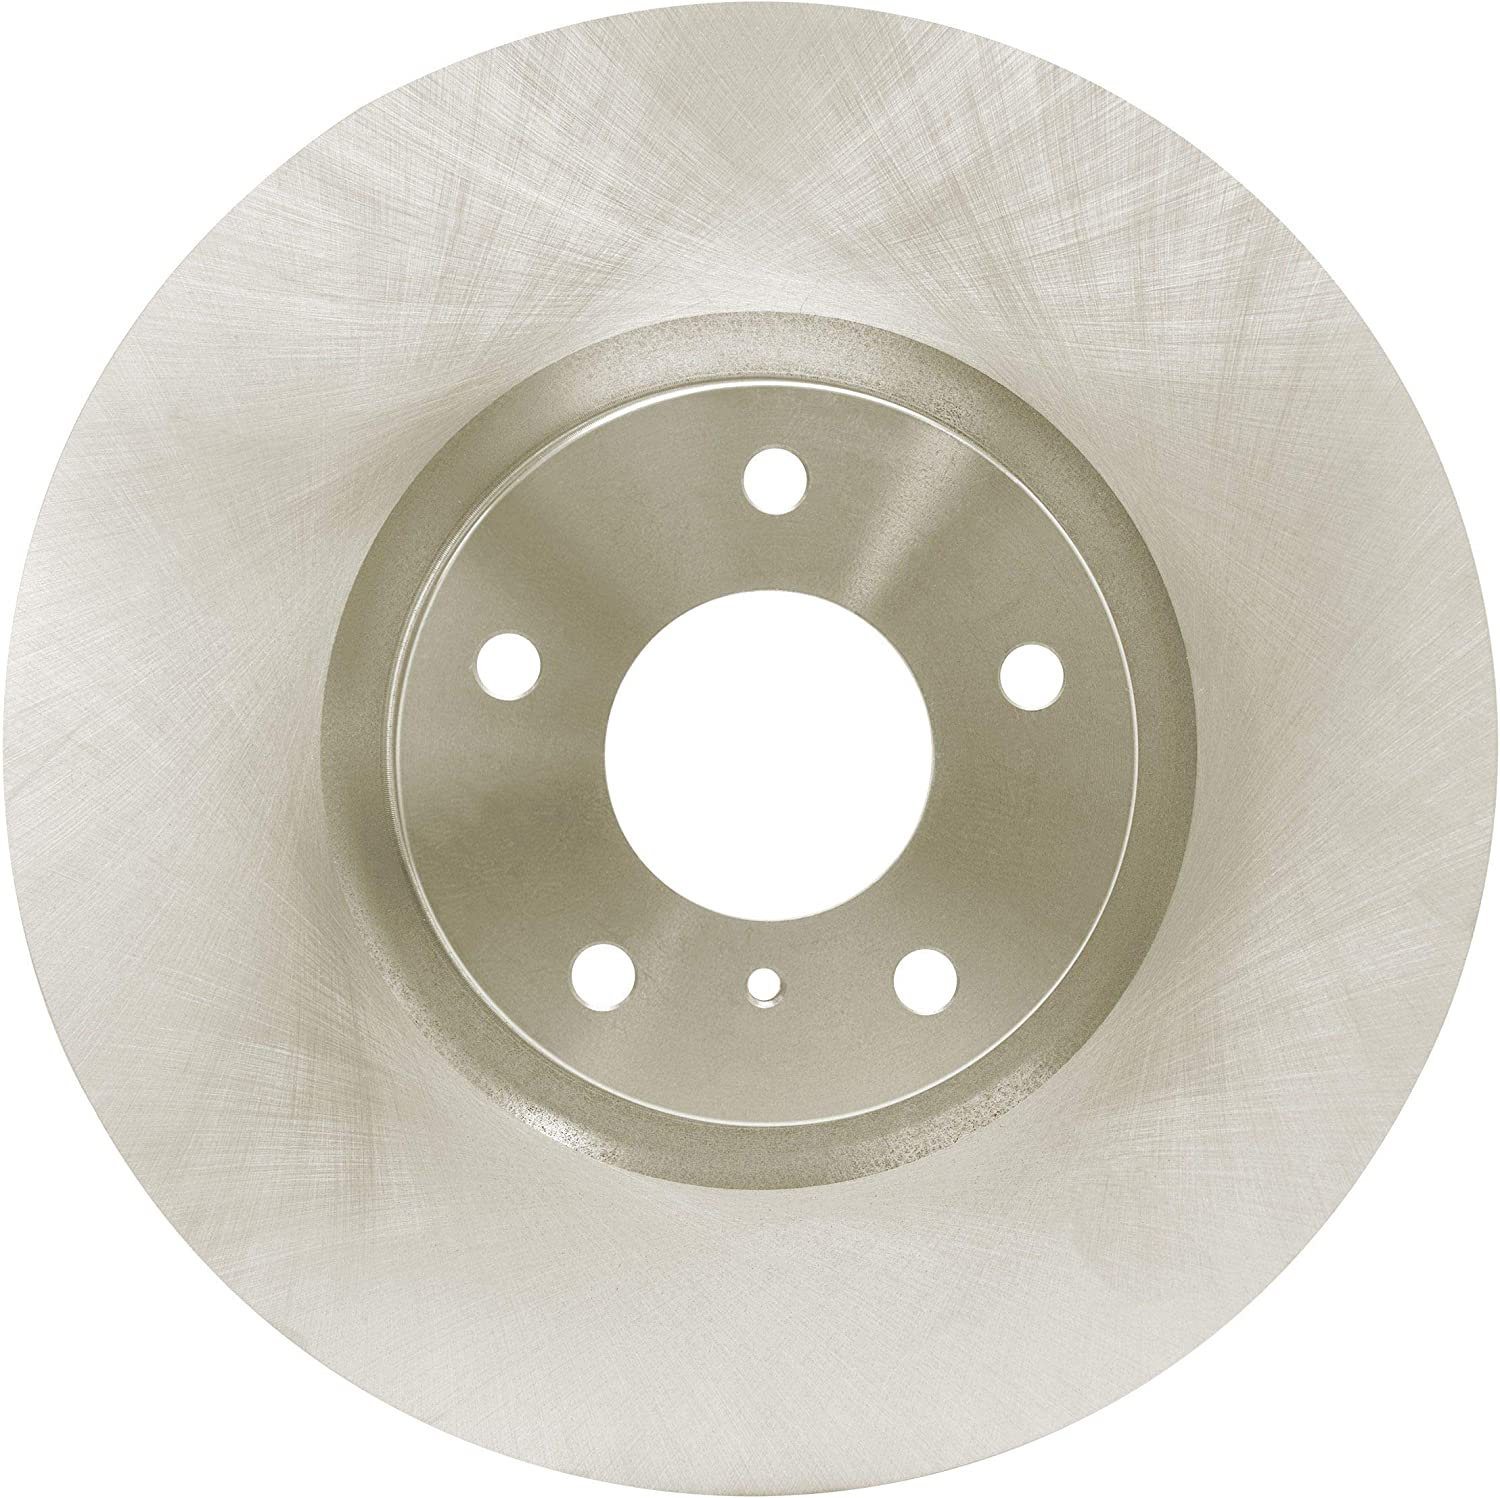 Deluxe Dynamic Friction Company Disc 600-37000 Brake Rotor 1 Dealing full price reduction